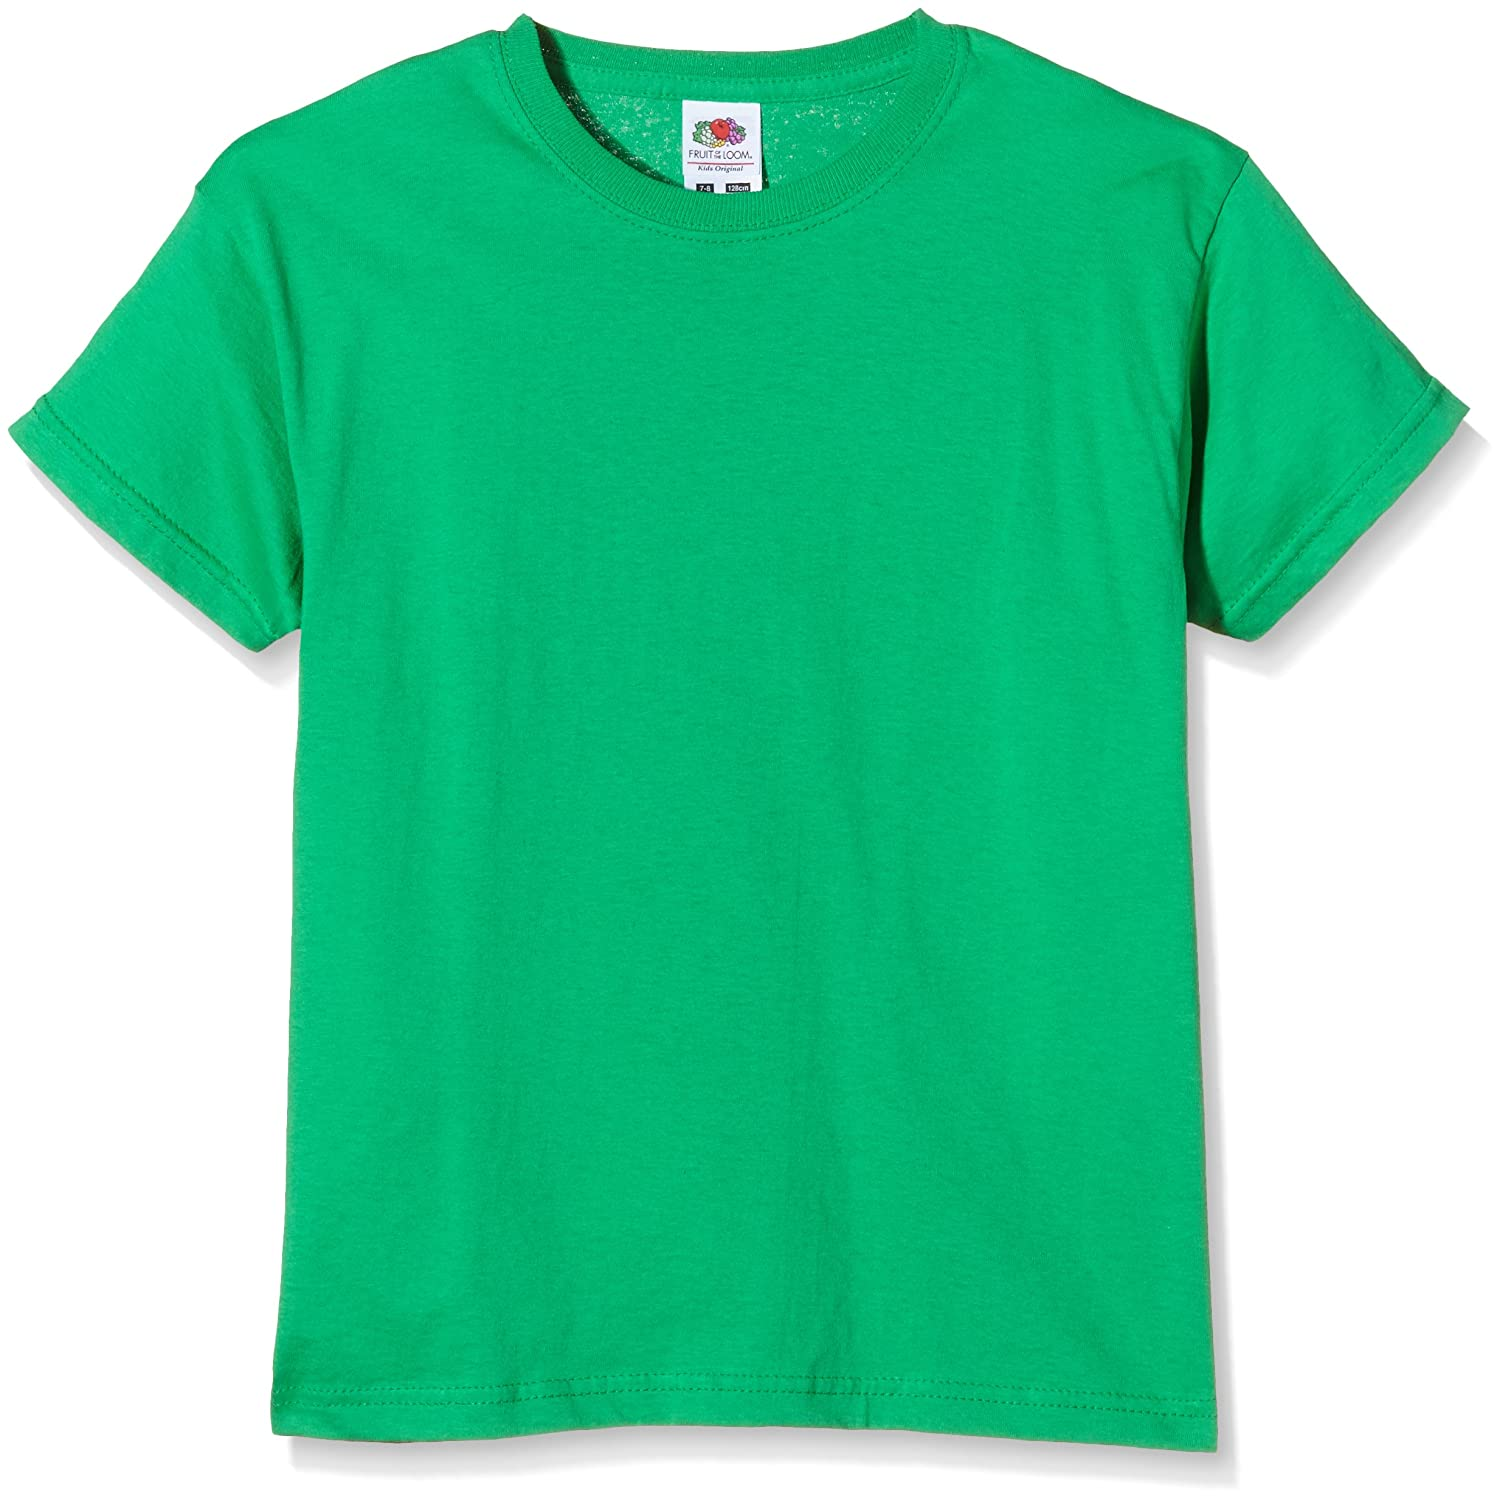 Fruit of the Loom Unisex Kids Original T T-Shirt Kelly Green Manufacturer Size:30 7-8 Years